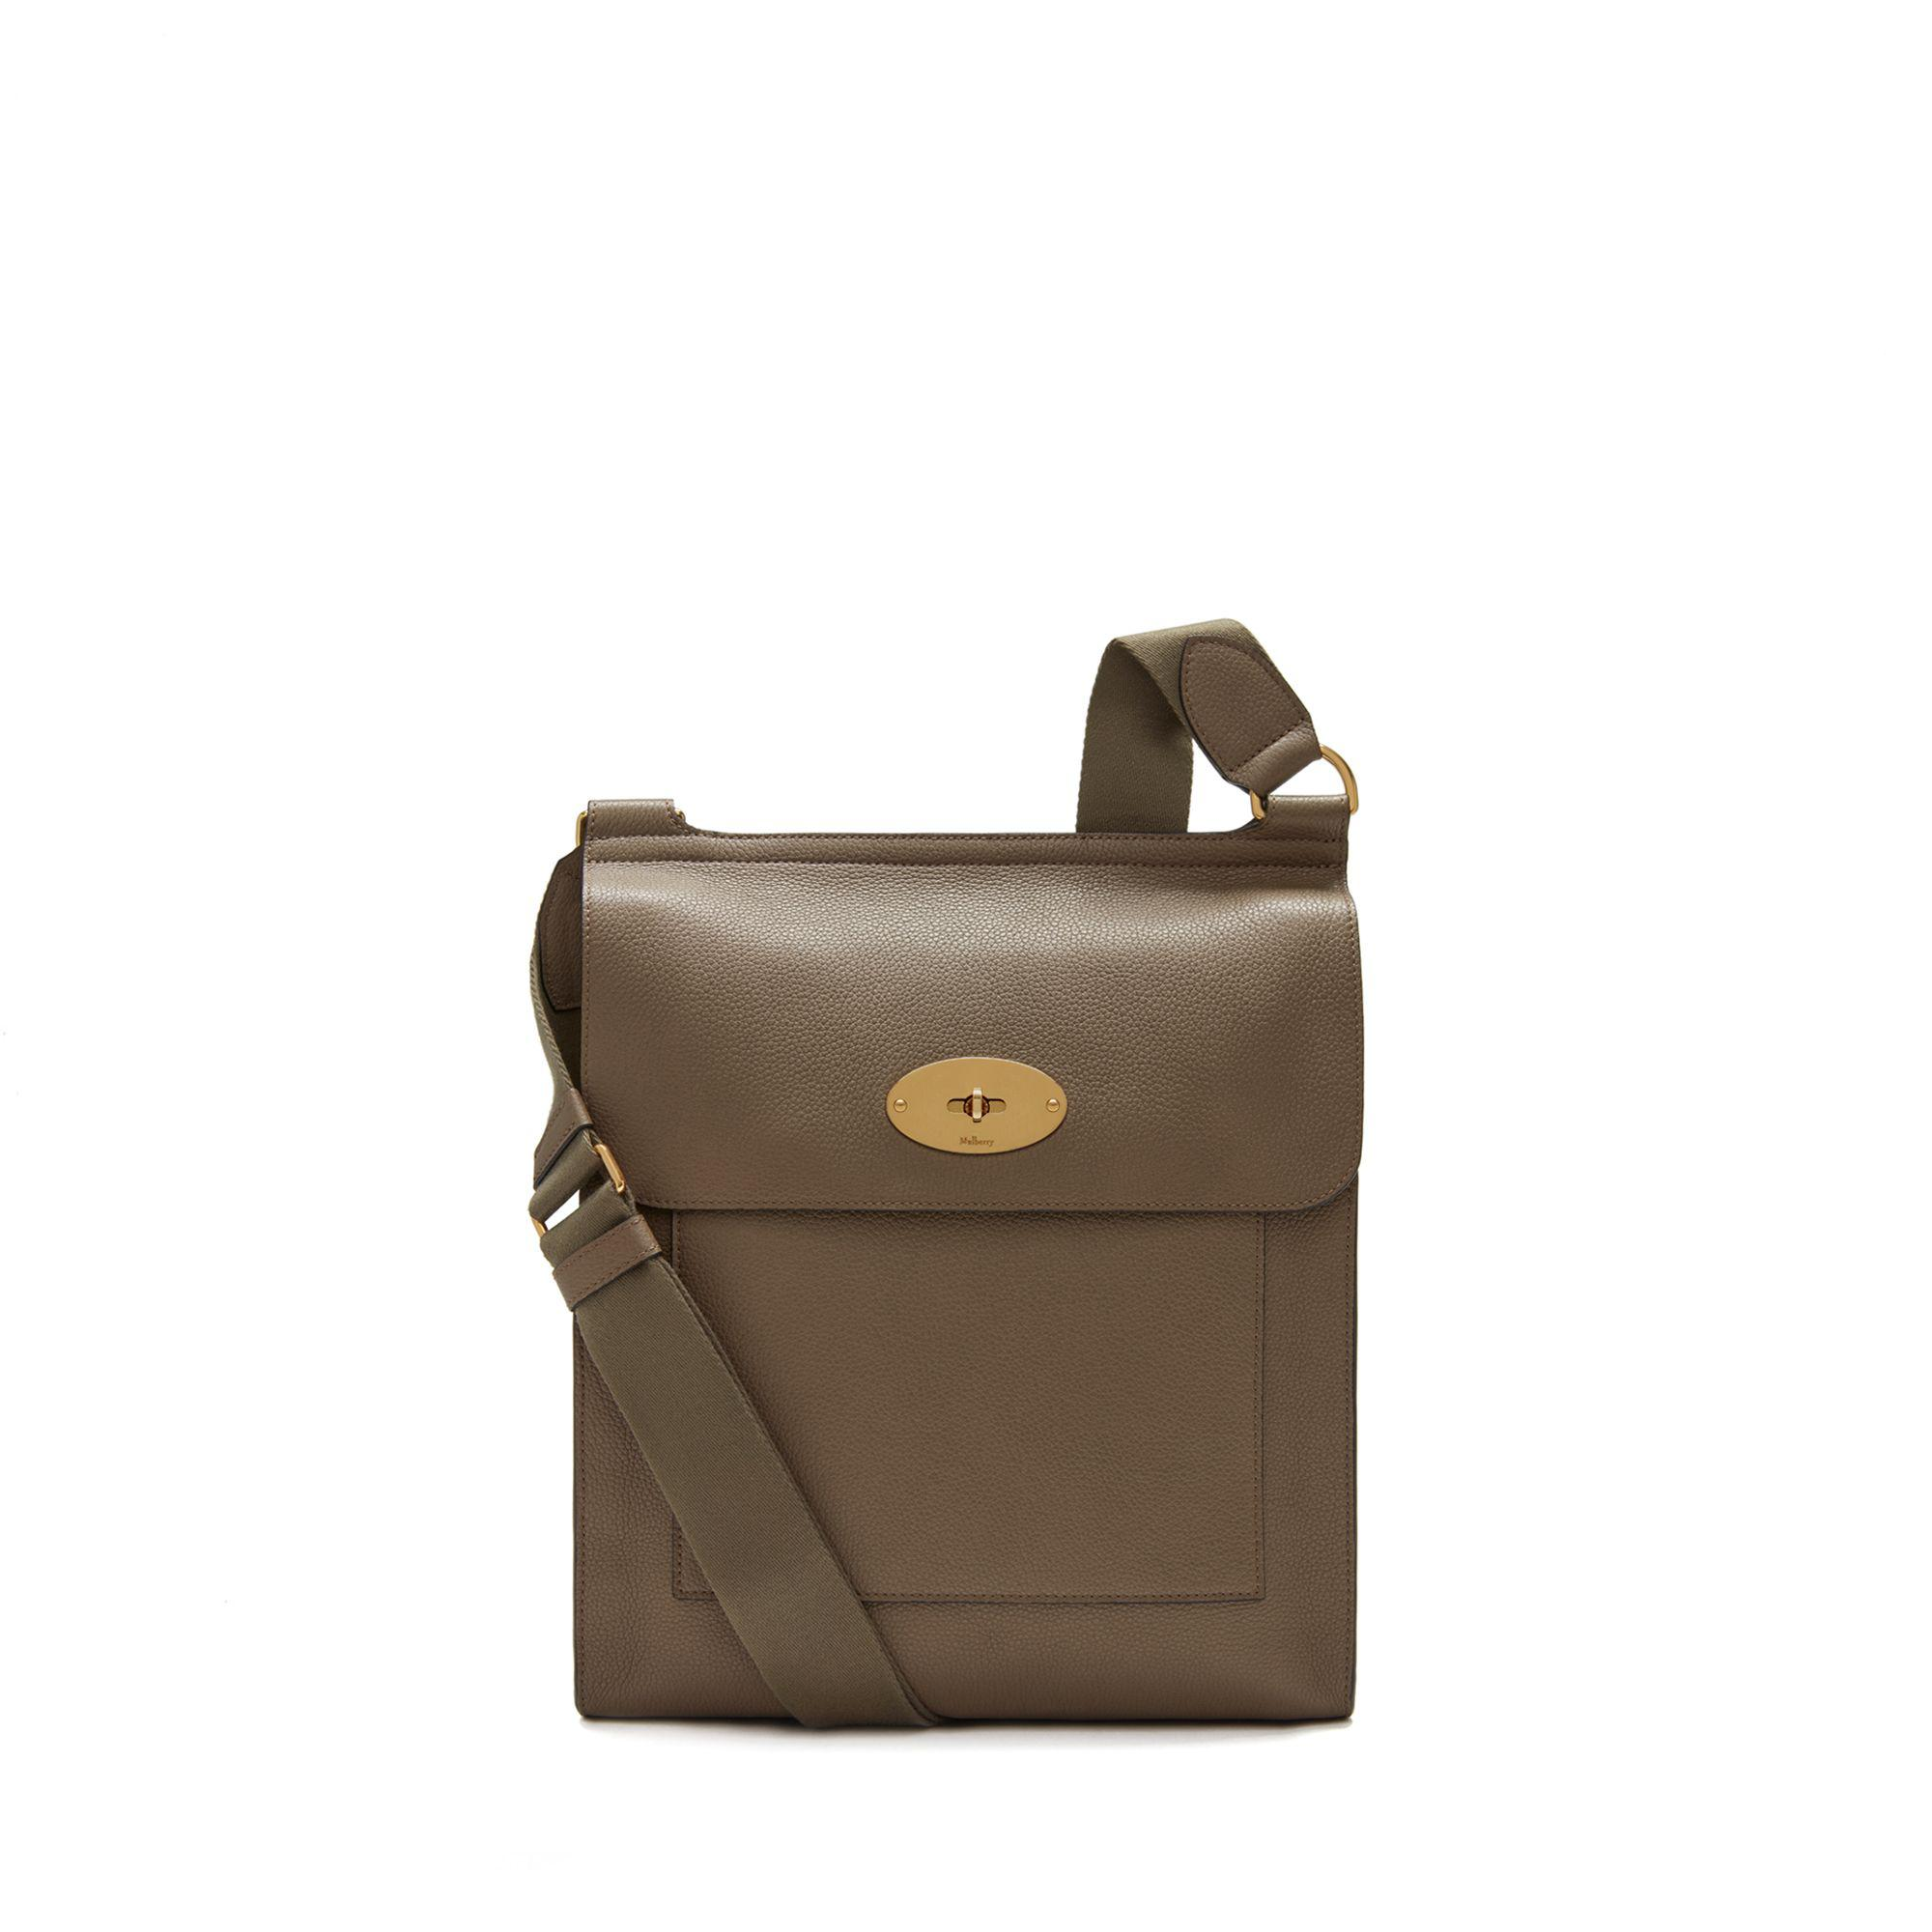 7752b04f56 Mulberry New Antony Messenger In Clay Small Classic Grain in Brown ...